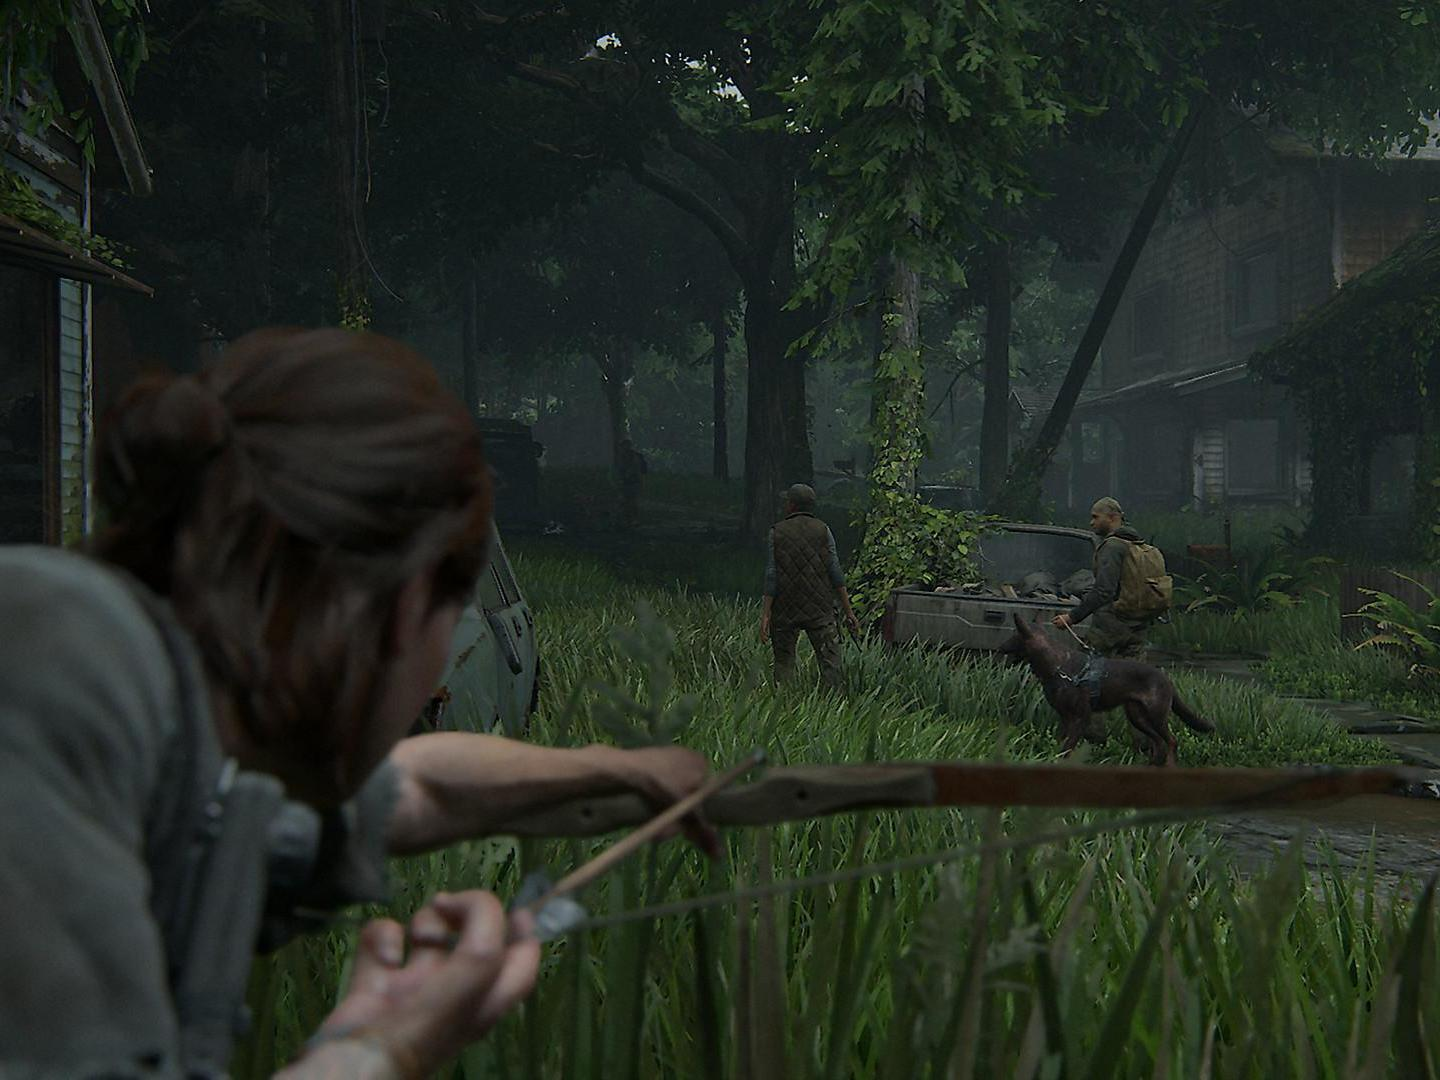 The Last of Us Part II: Studio confirms players will not need to kill dogs to finish the game, after marketing copy sparks outrage